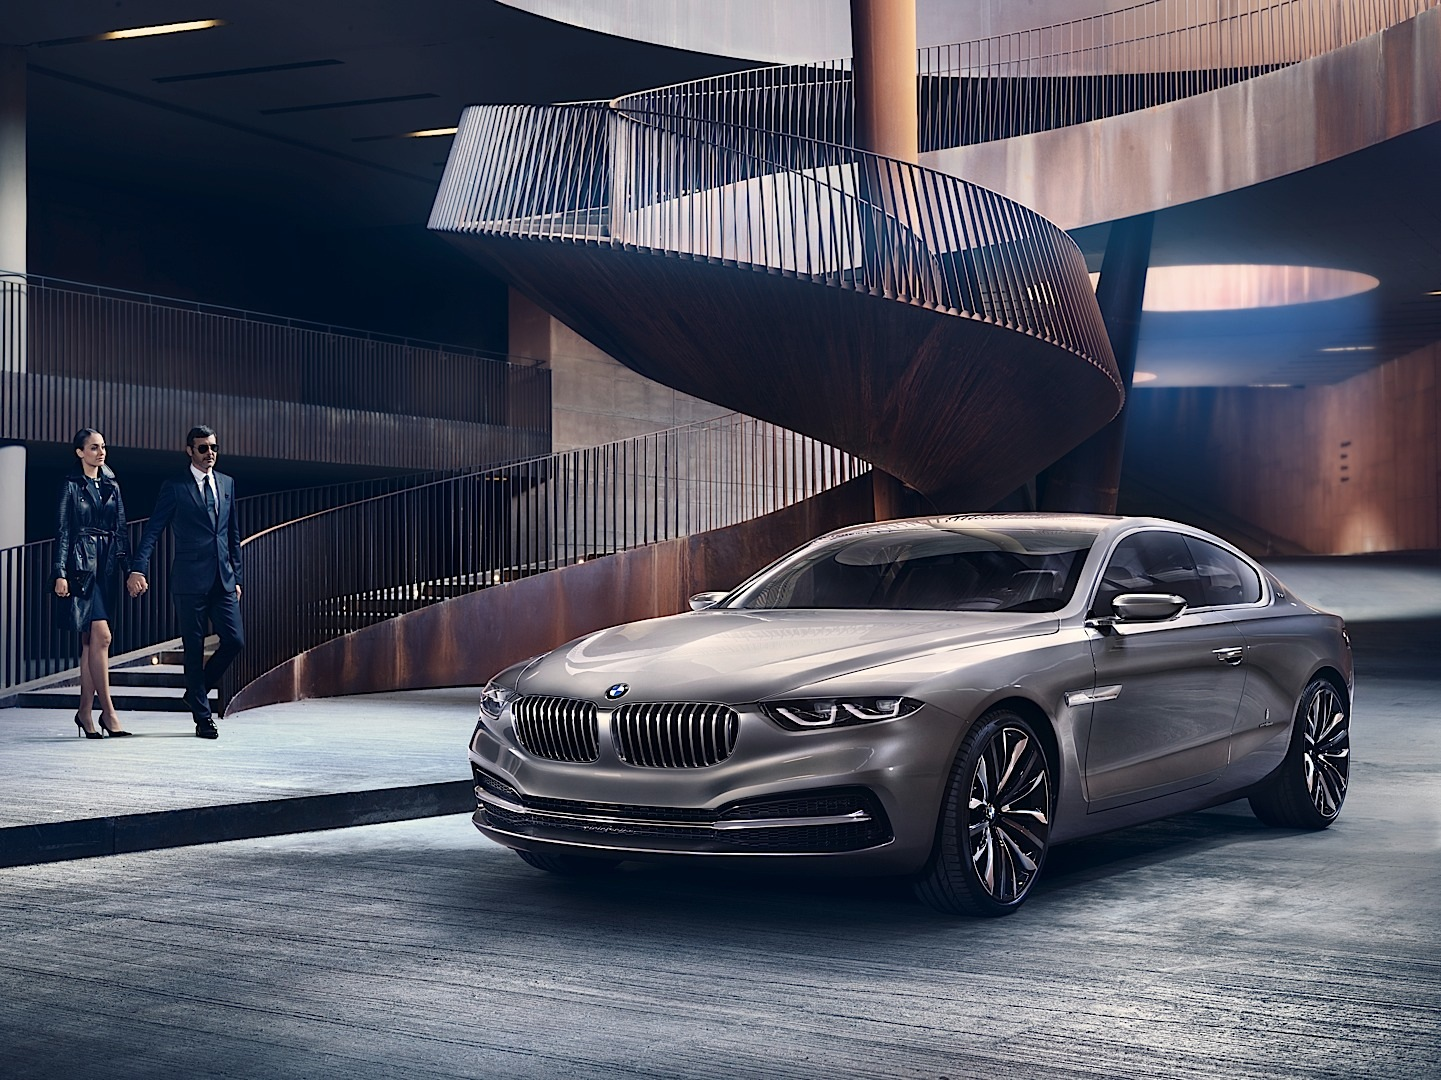 Will Bmw Bring Back The 8 Series To Compete With The S Class Coupe